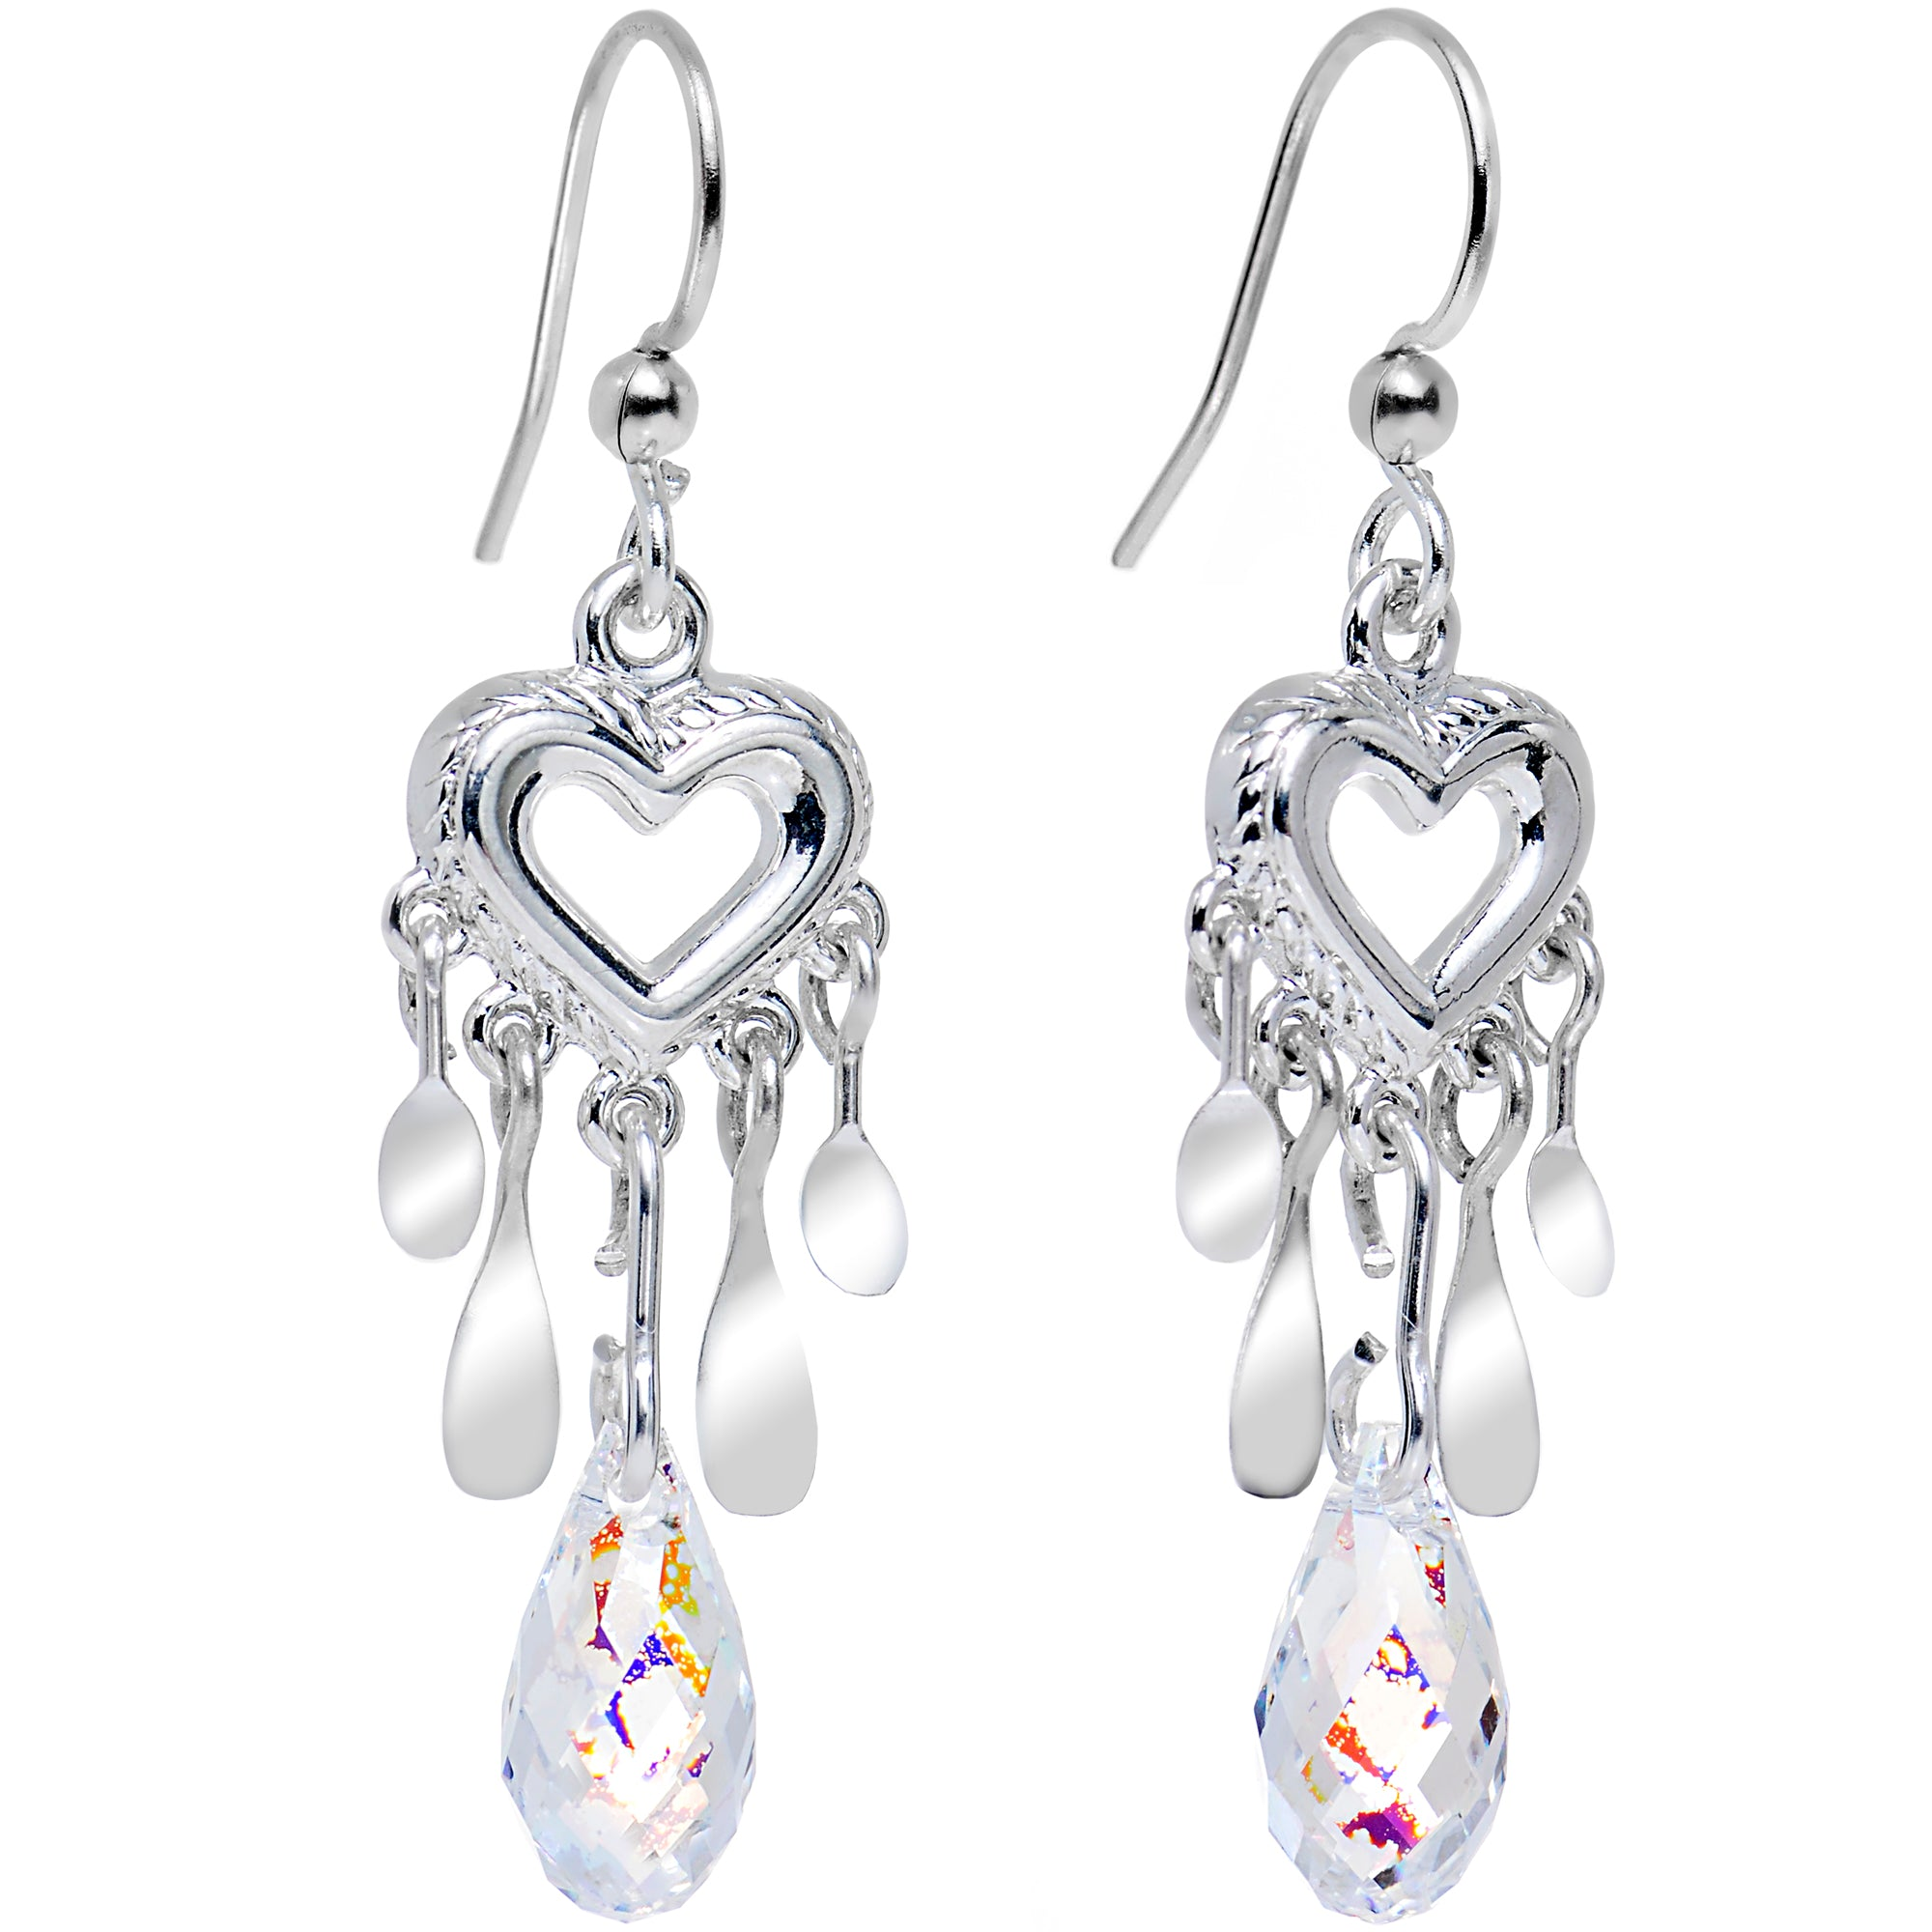 Handcrafted Clear Drop Heart Earrings Created with Swarovski Crystals